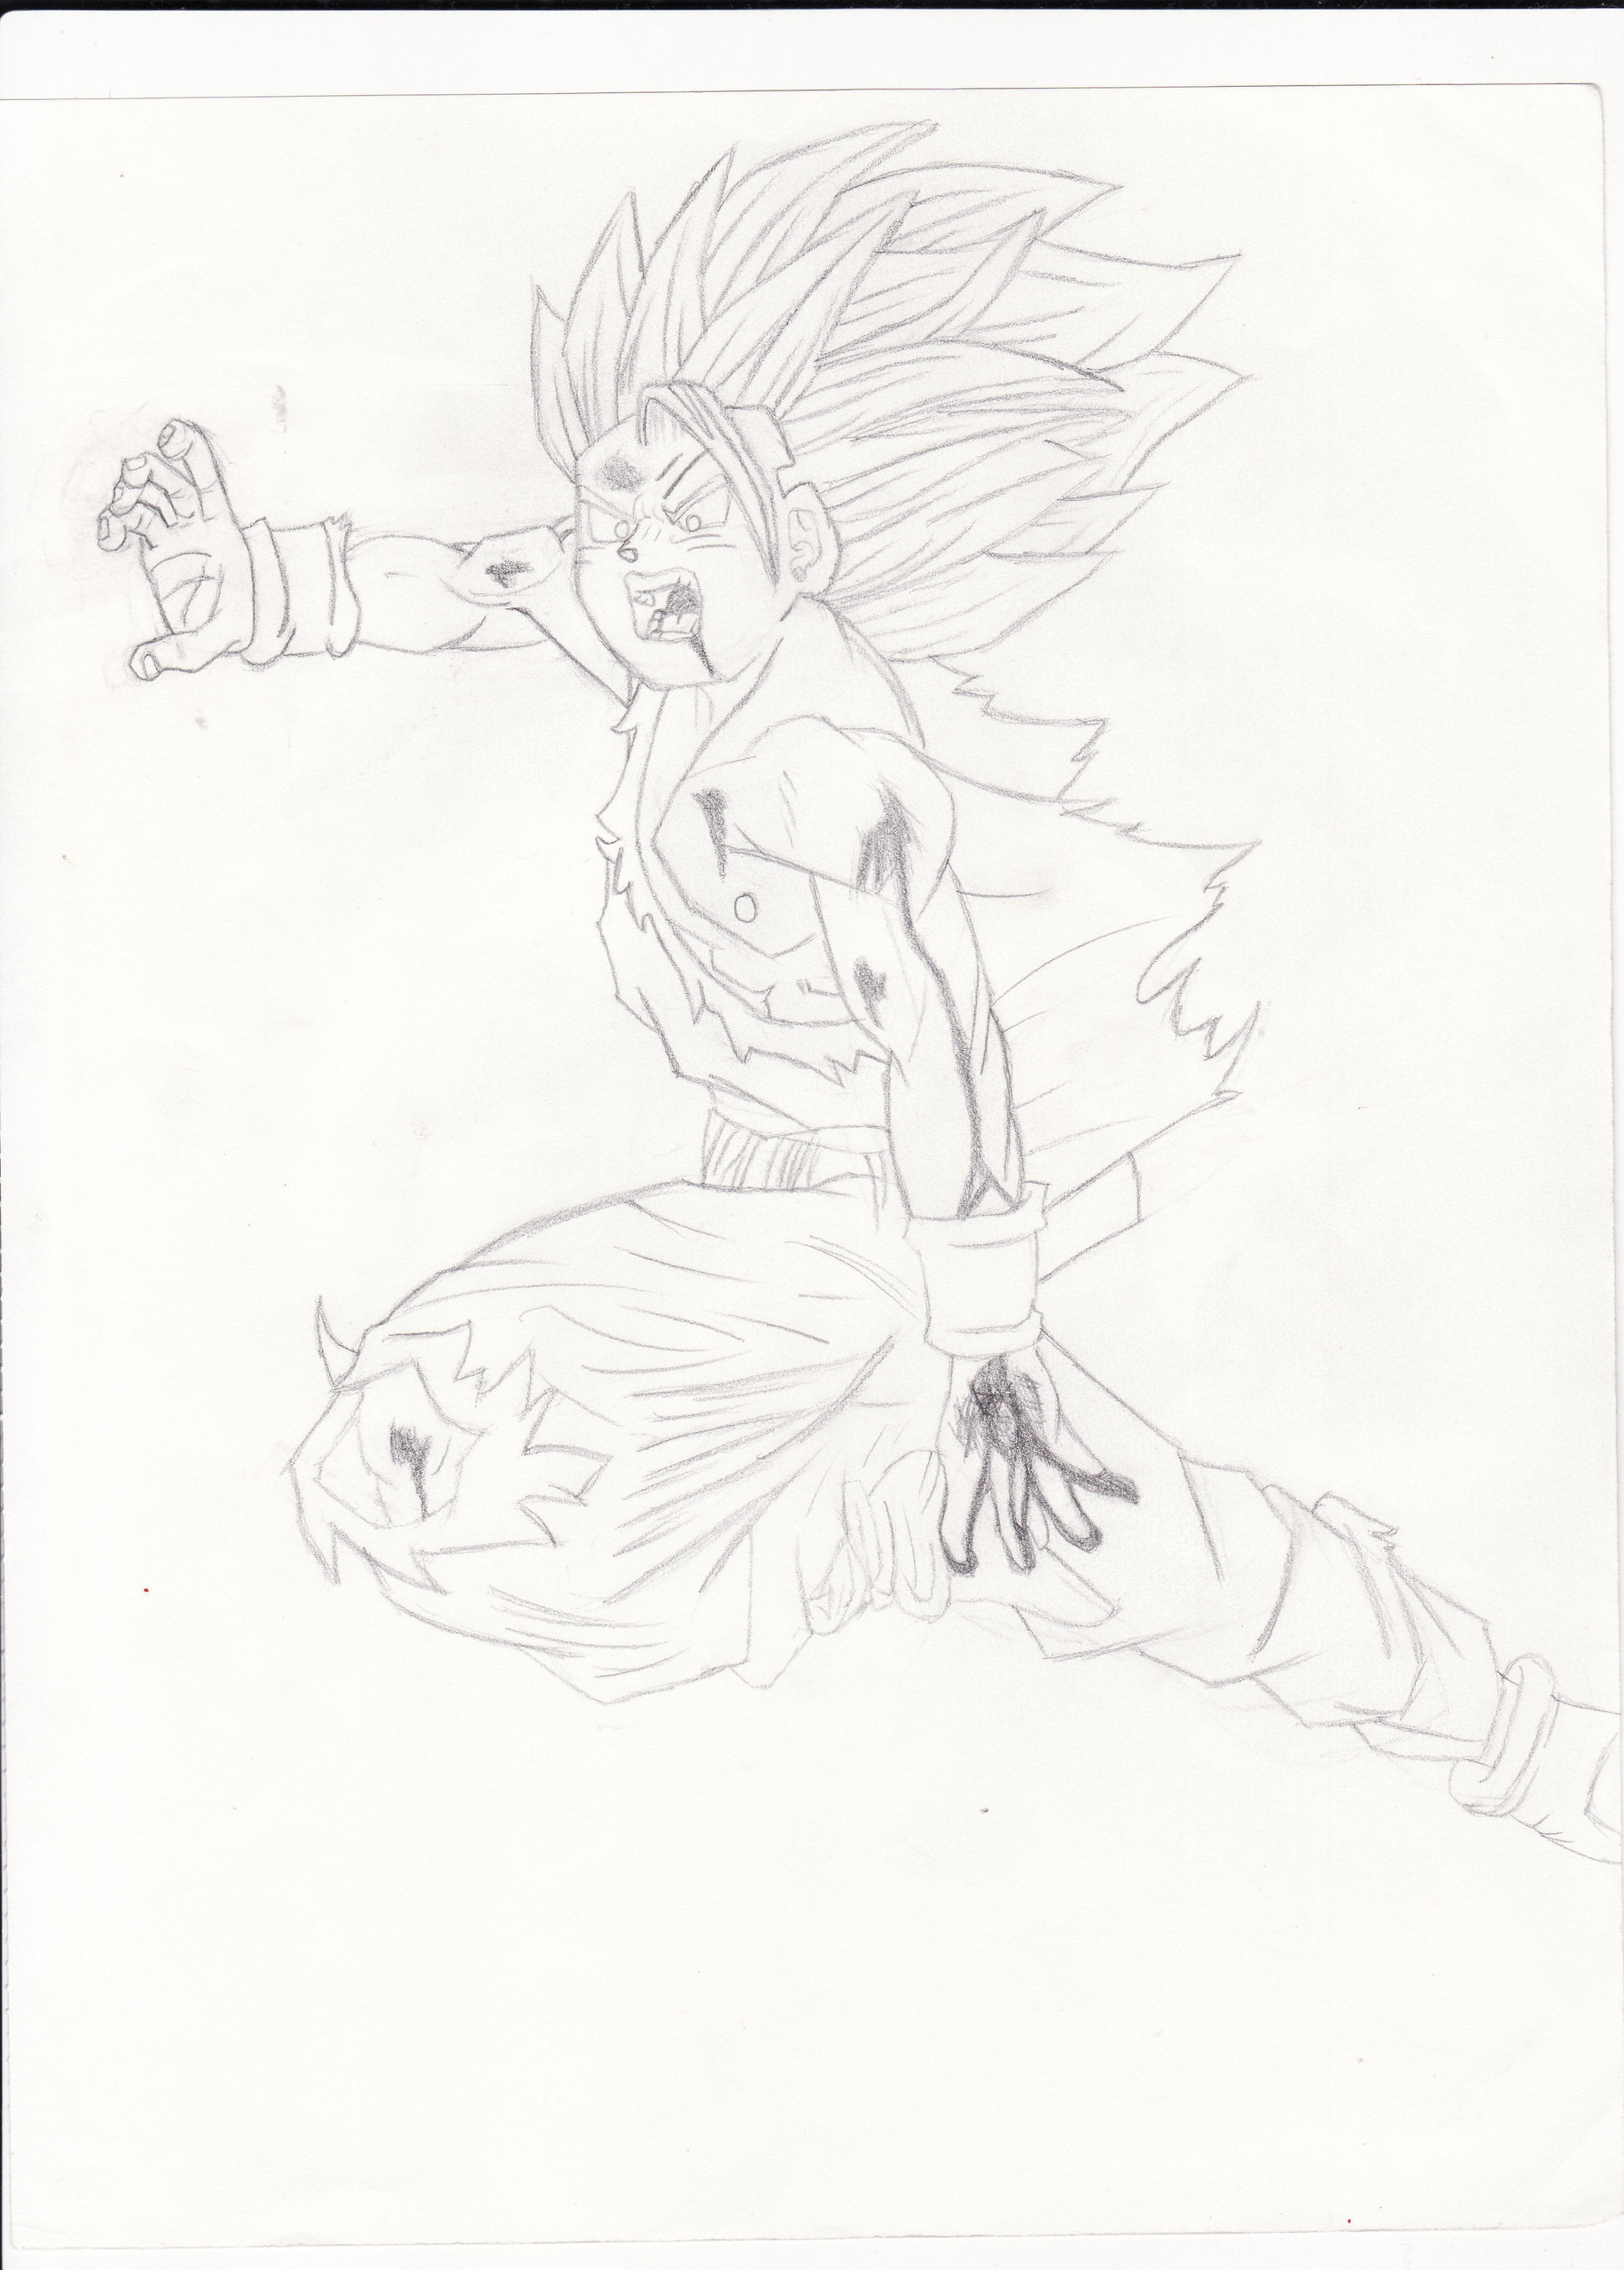 My drawing of Gohan doing the kamehameha